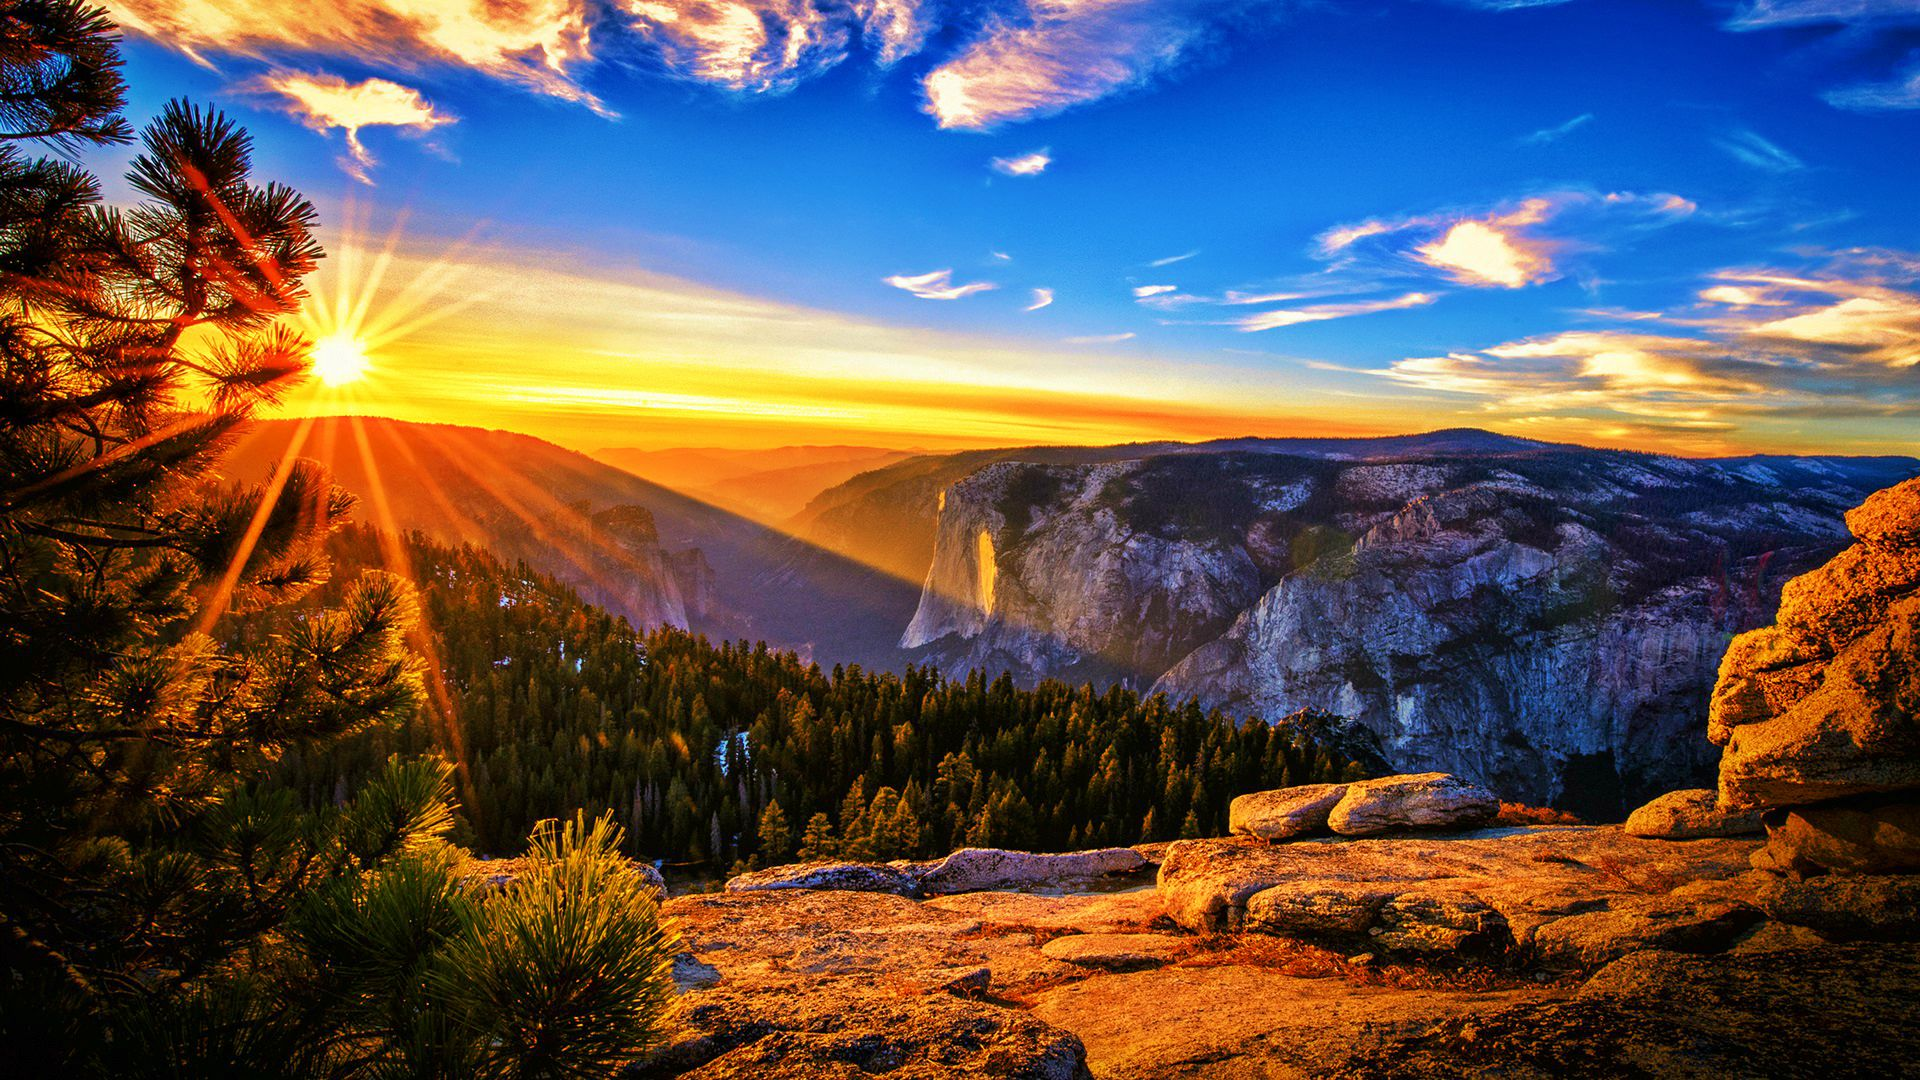 Mountain Sunrise Wallpaper | Full HD Pictures